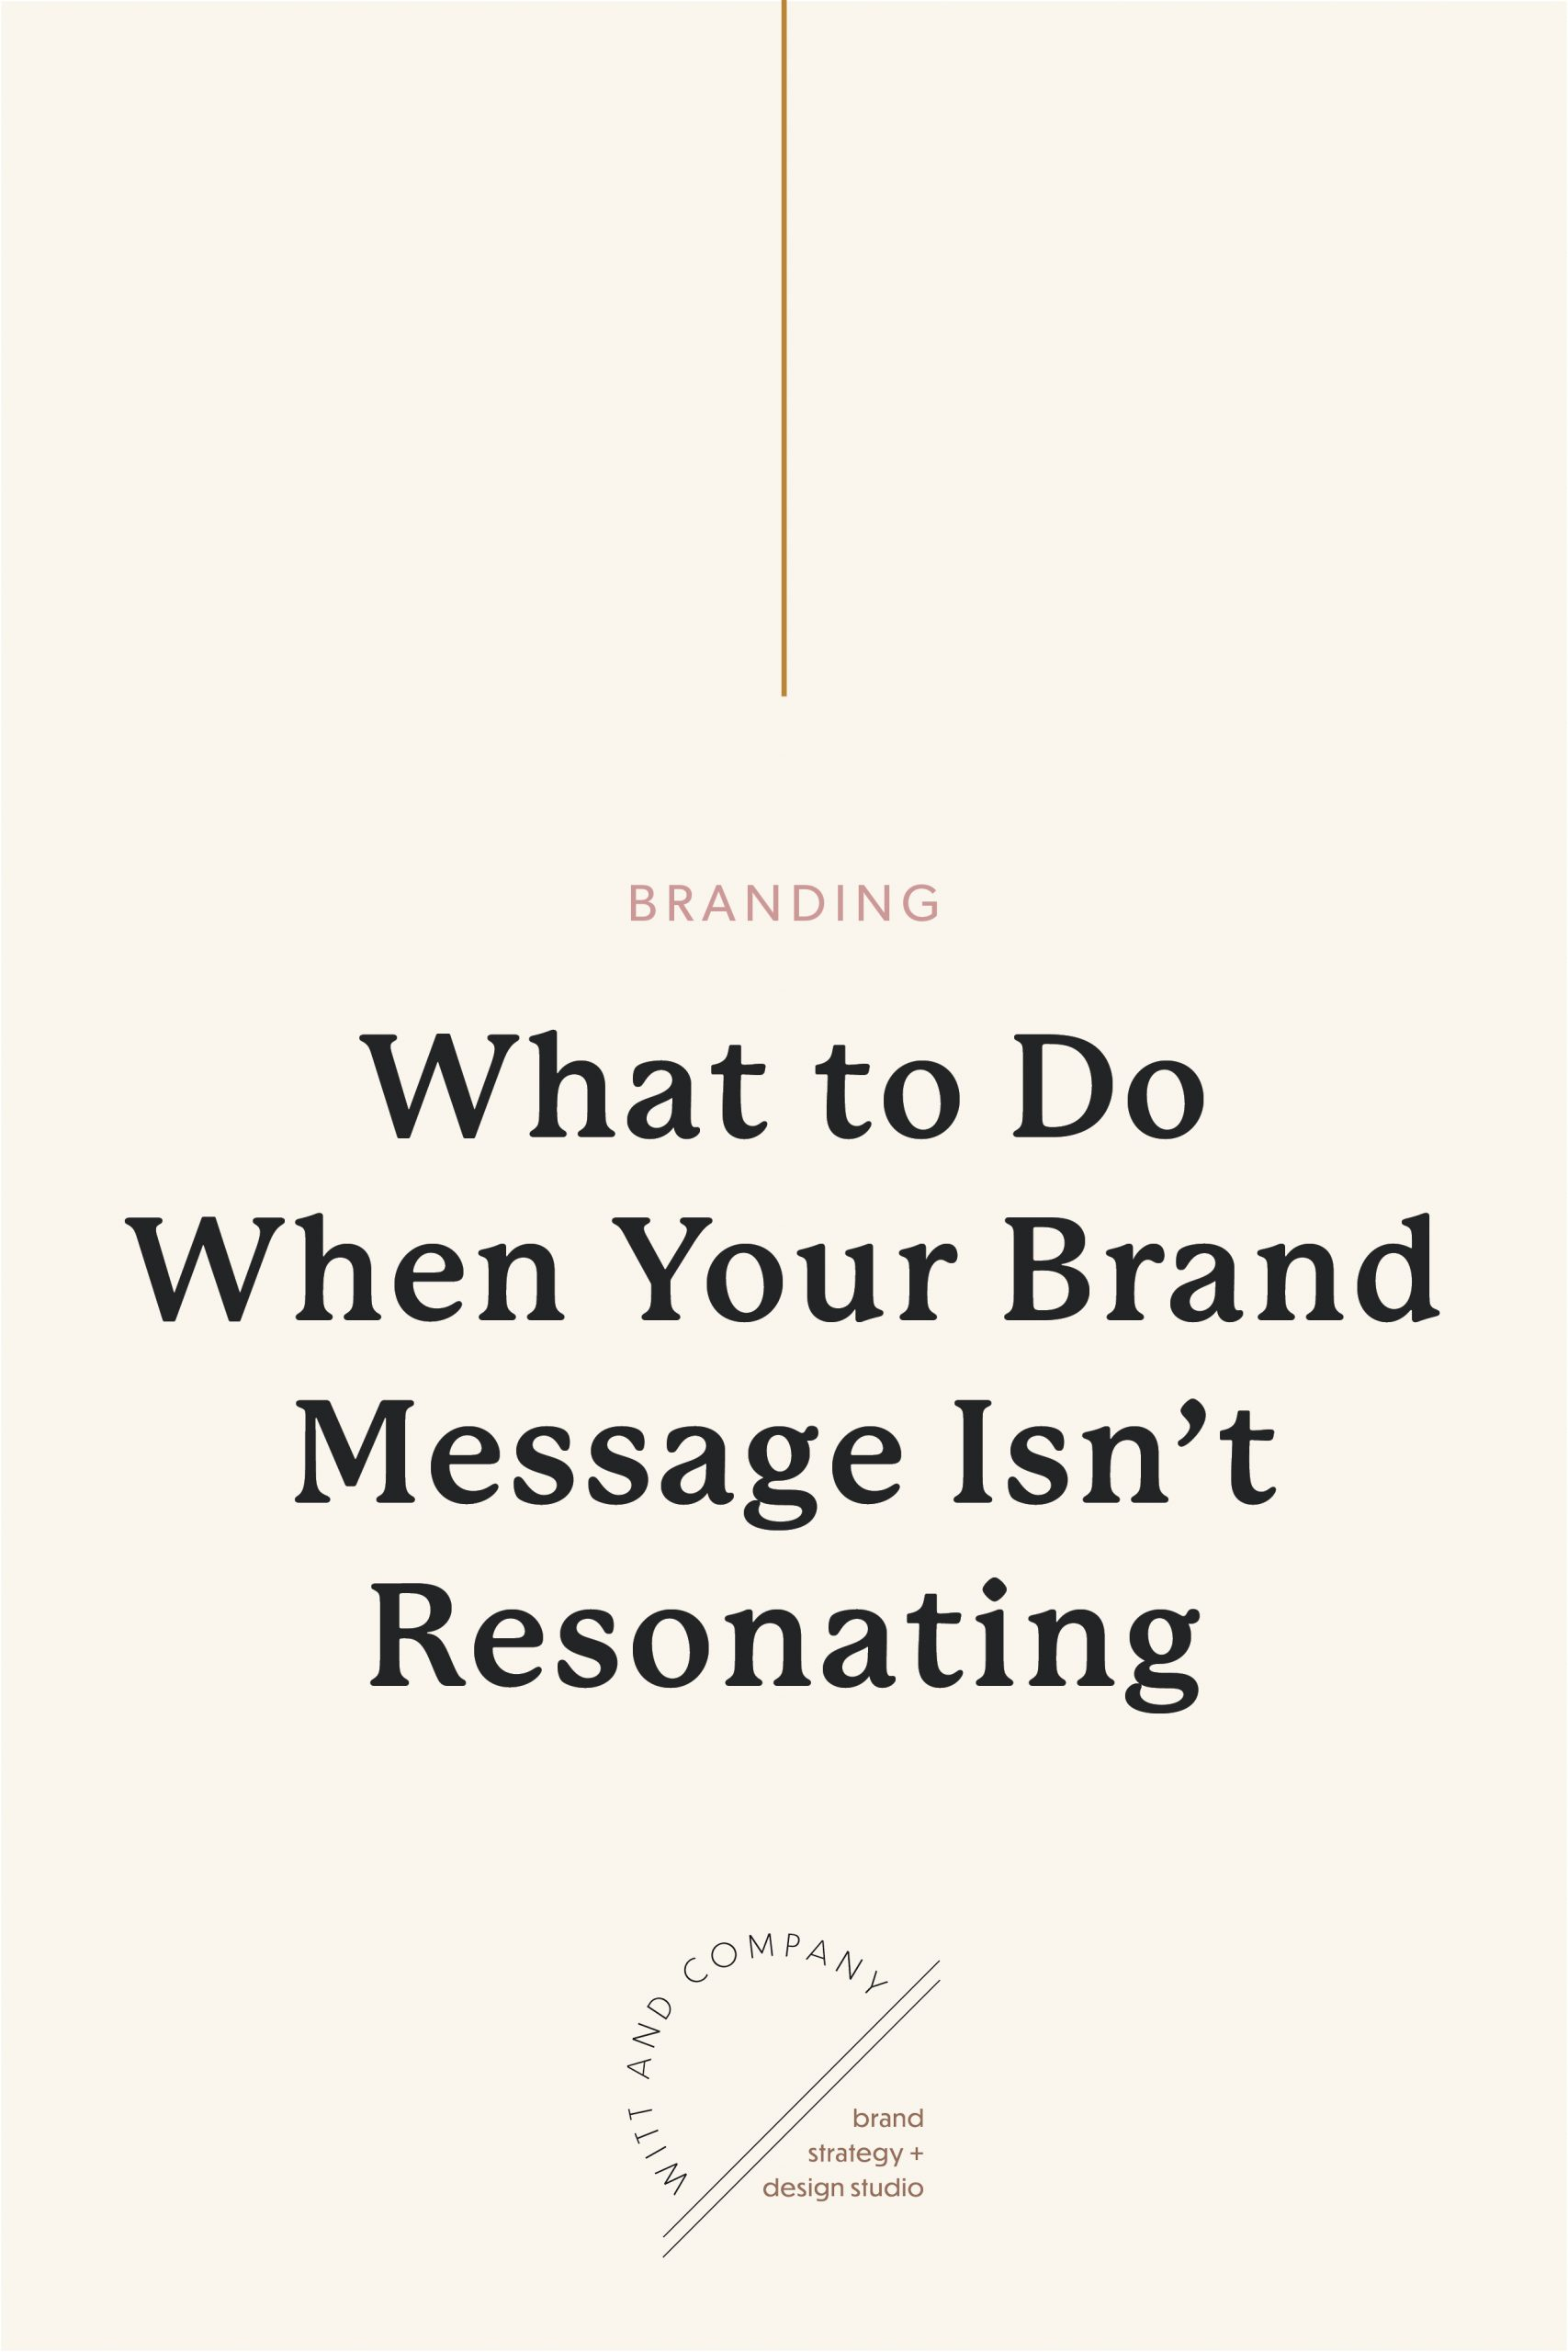 Three Changes To Make When Your Brand Message Isn't Working